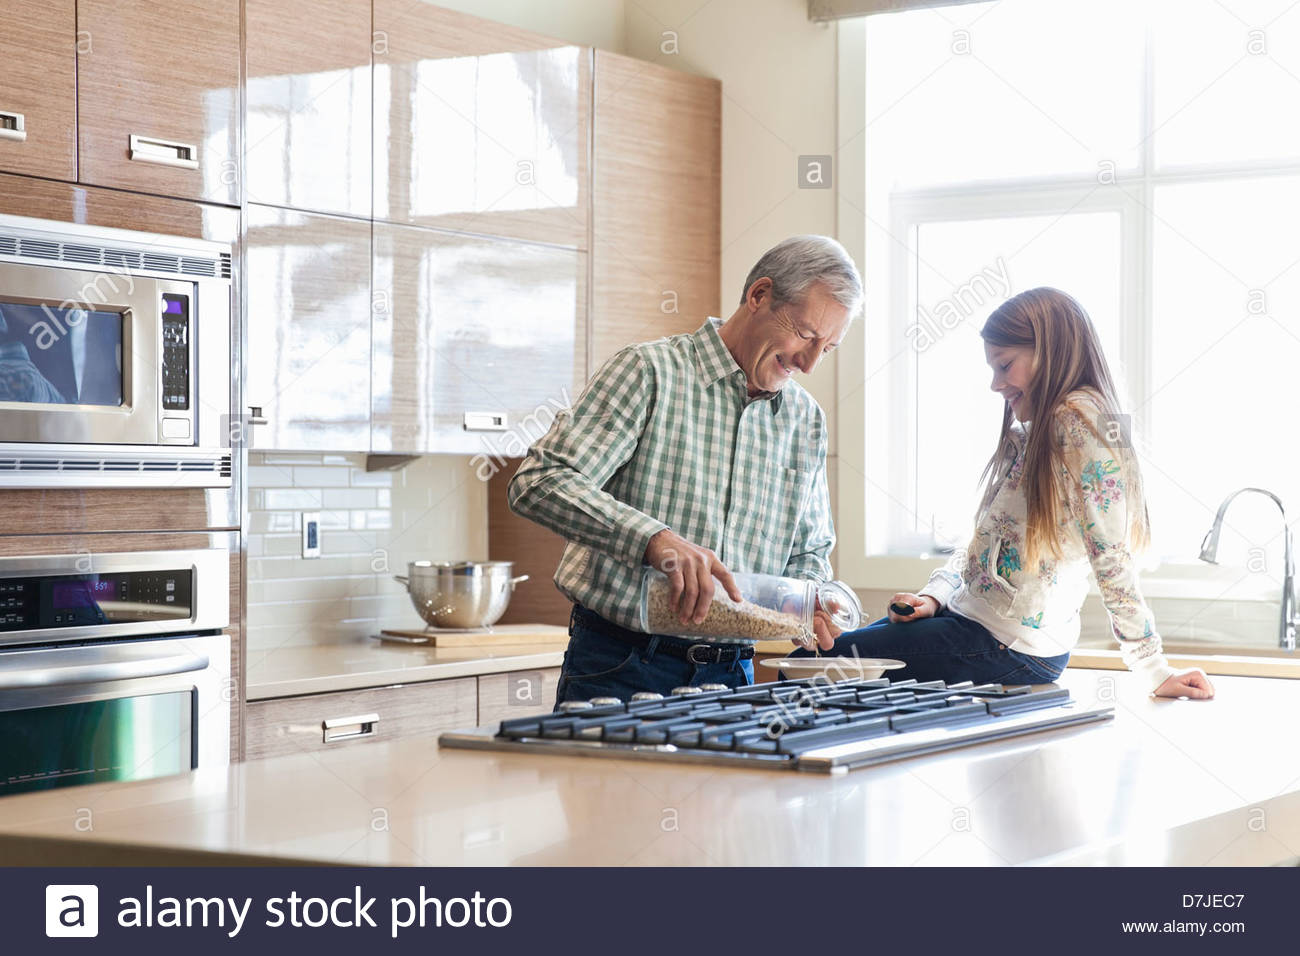 Grandfather preparing breakfast for granddaughter in kitchen - Stock Image